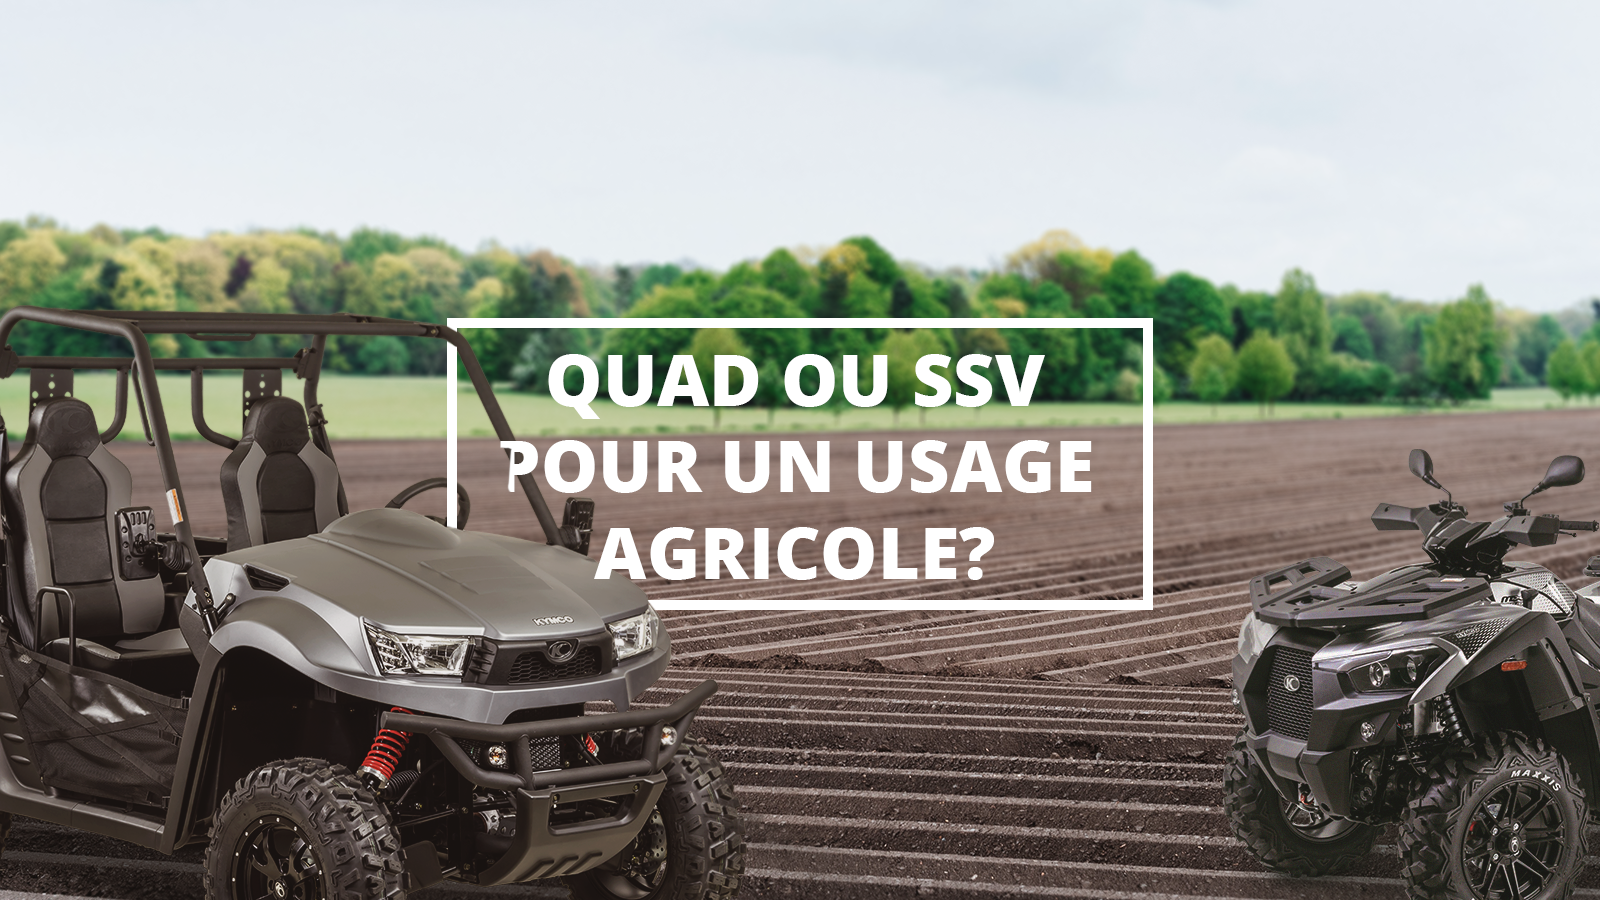 quads-ou-ssv-agricole-featured